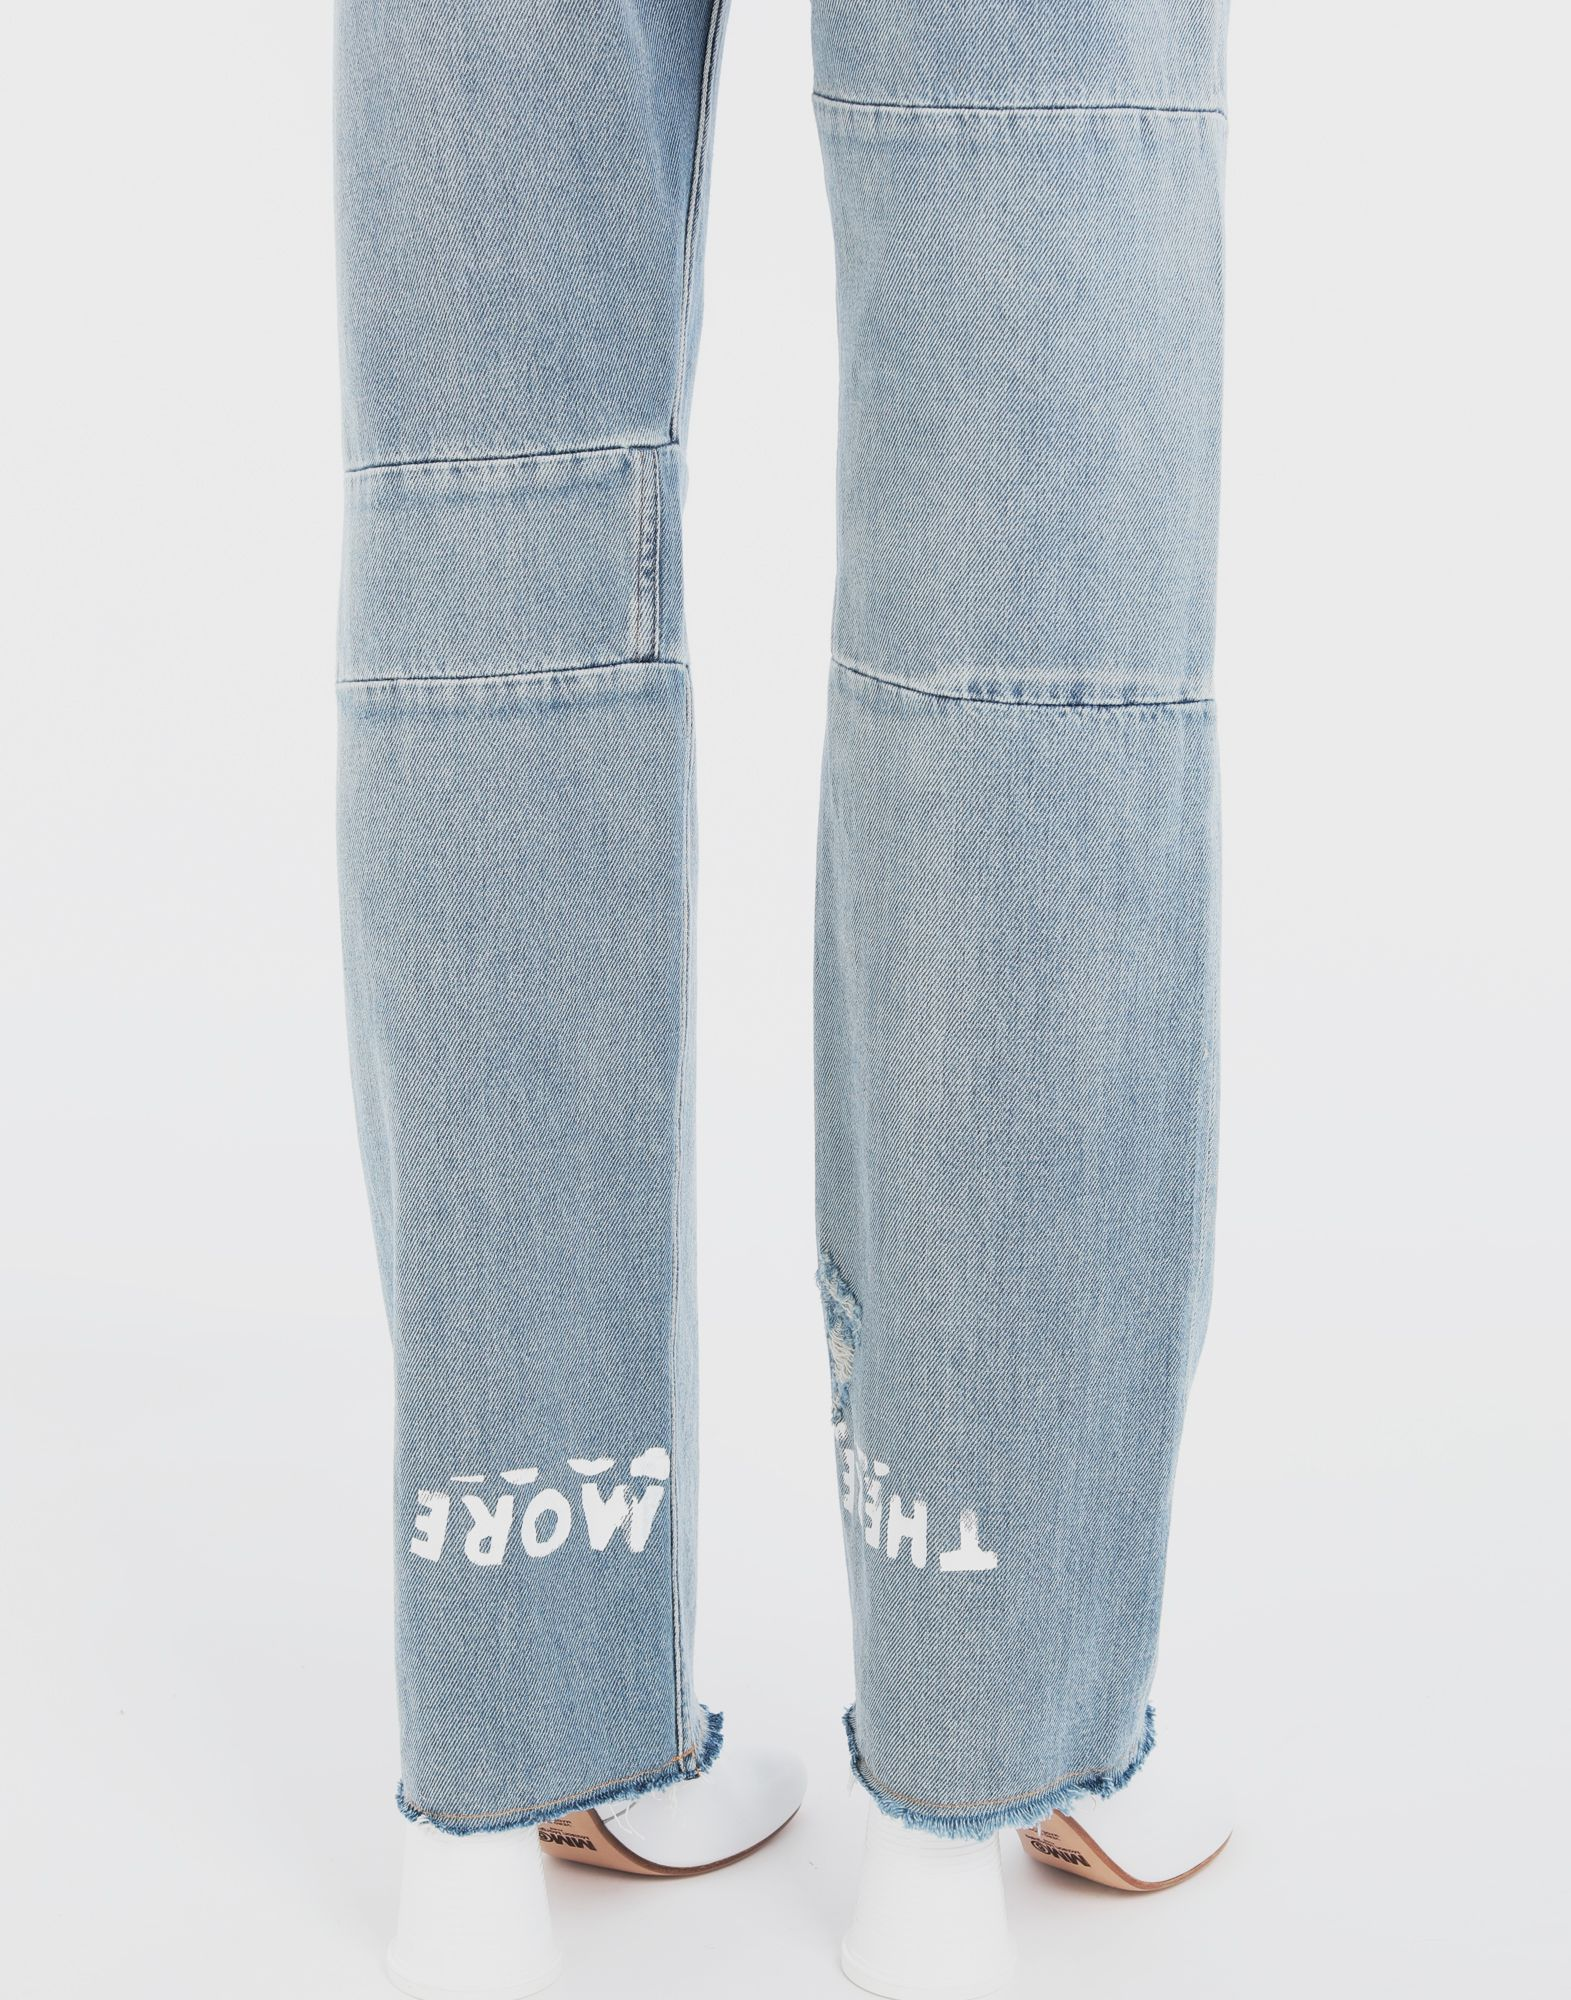 MM6 MAISON MARGIELA Charity AIDS-print denim pants Jeans Woman b